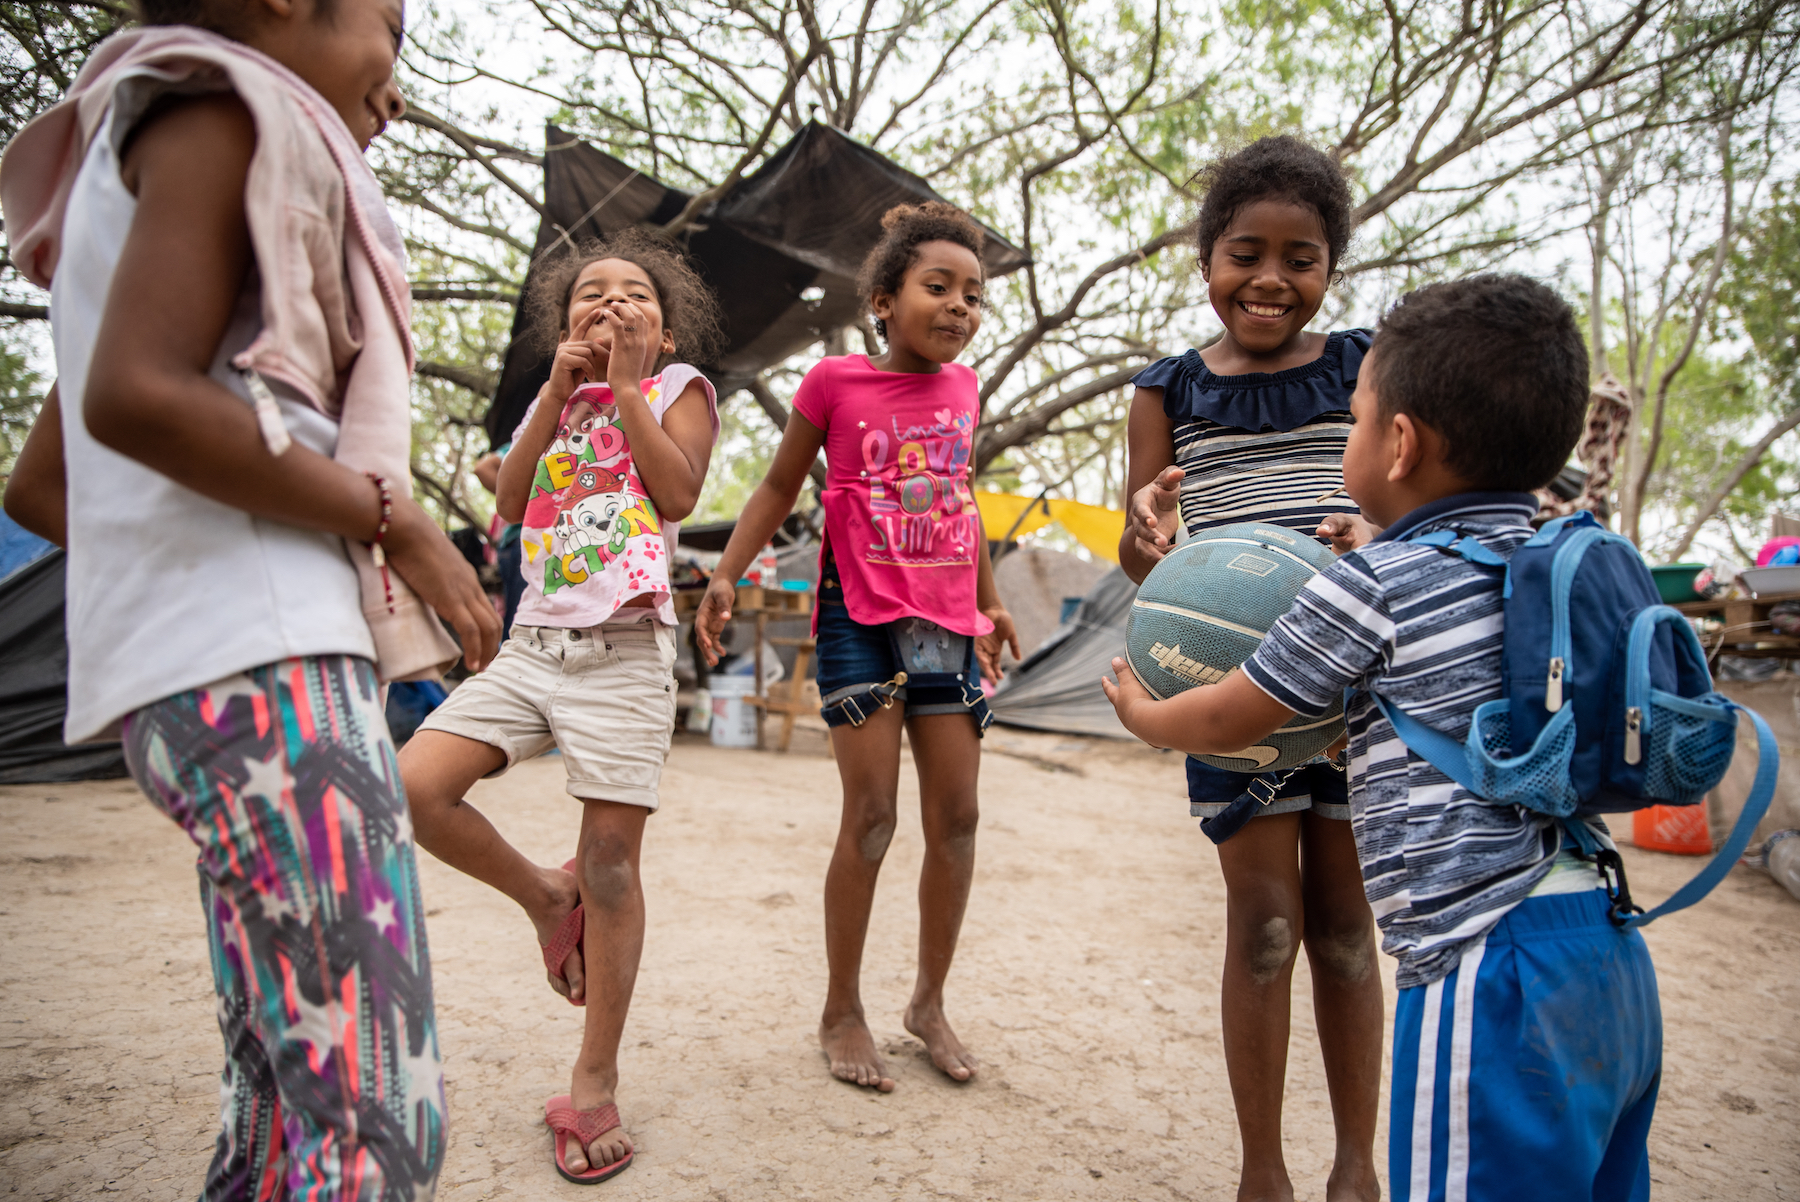 A group of children play